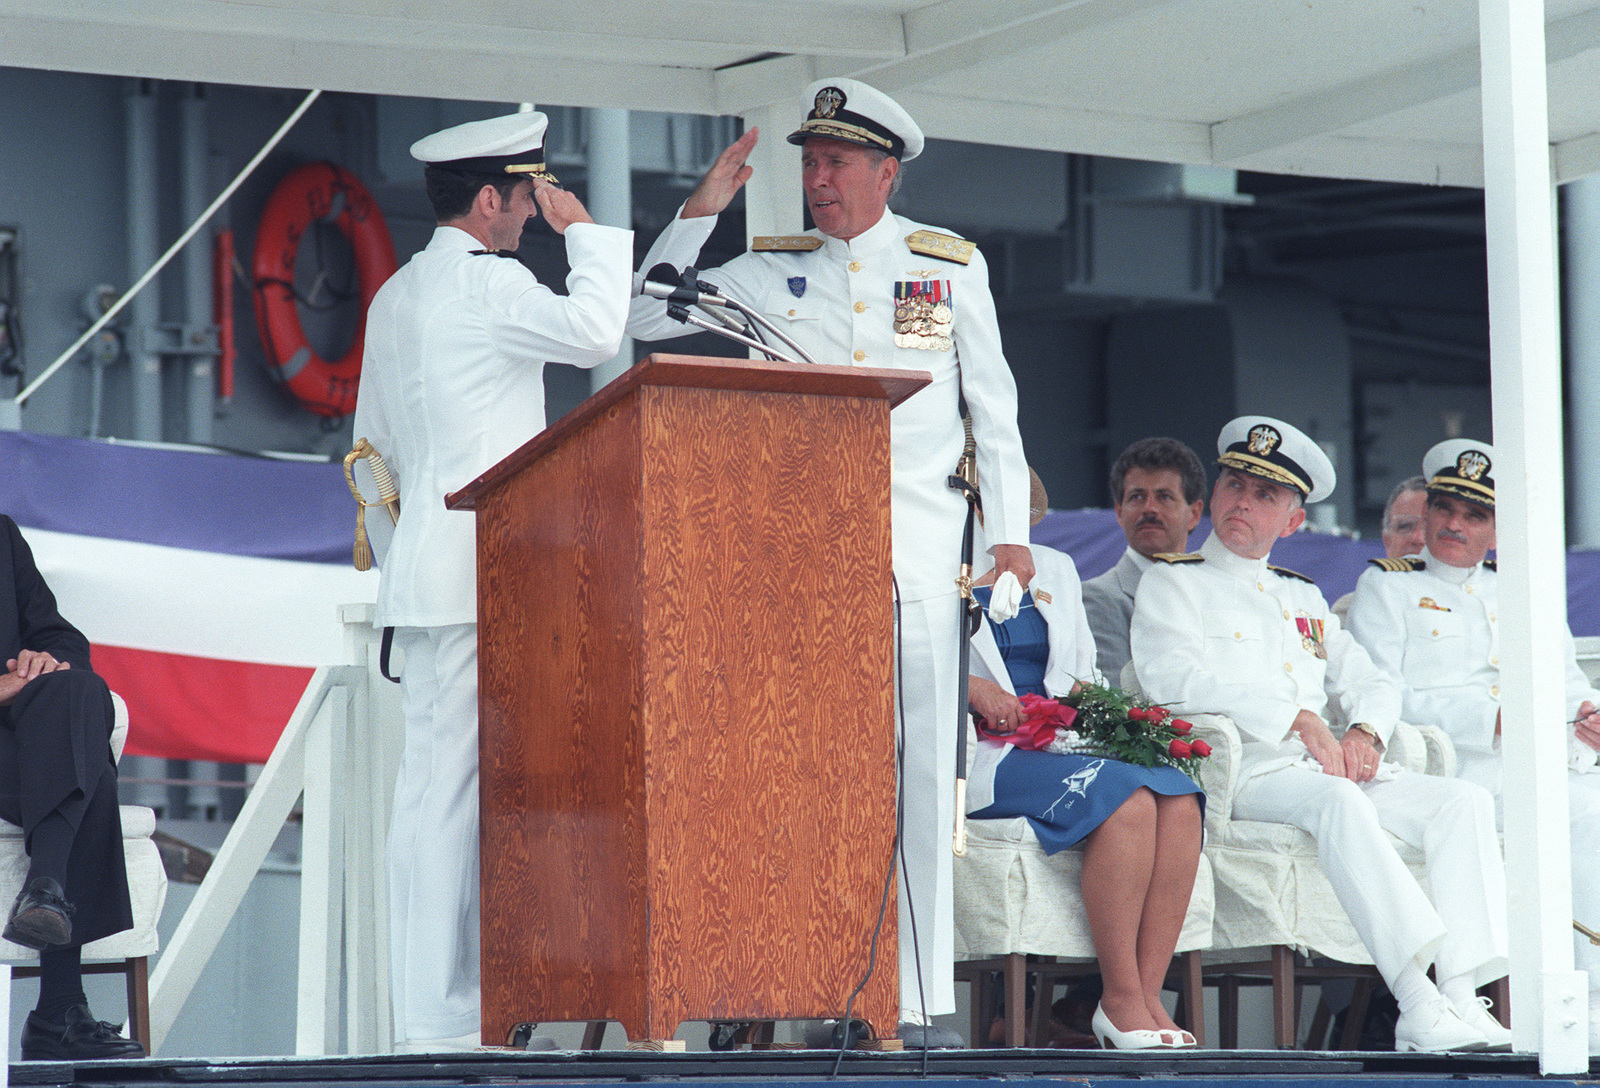 Commander (CDR) R.W. Moore, commanding officer of the guided missile frigate USS ELROD (FFG 55), left, salutes Admiral Wesley L. McDonald, commander in chief, Atlantic and Atlantic Fleet, during the ship's commissioning